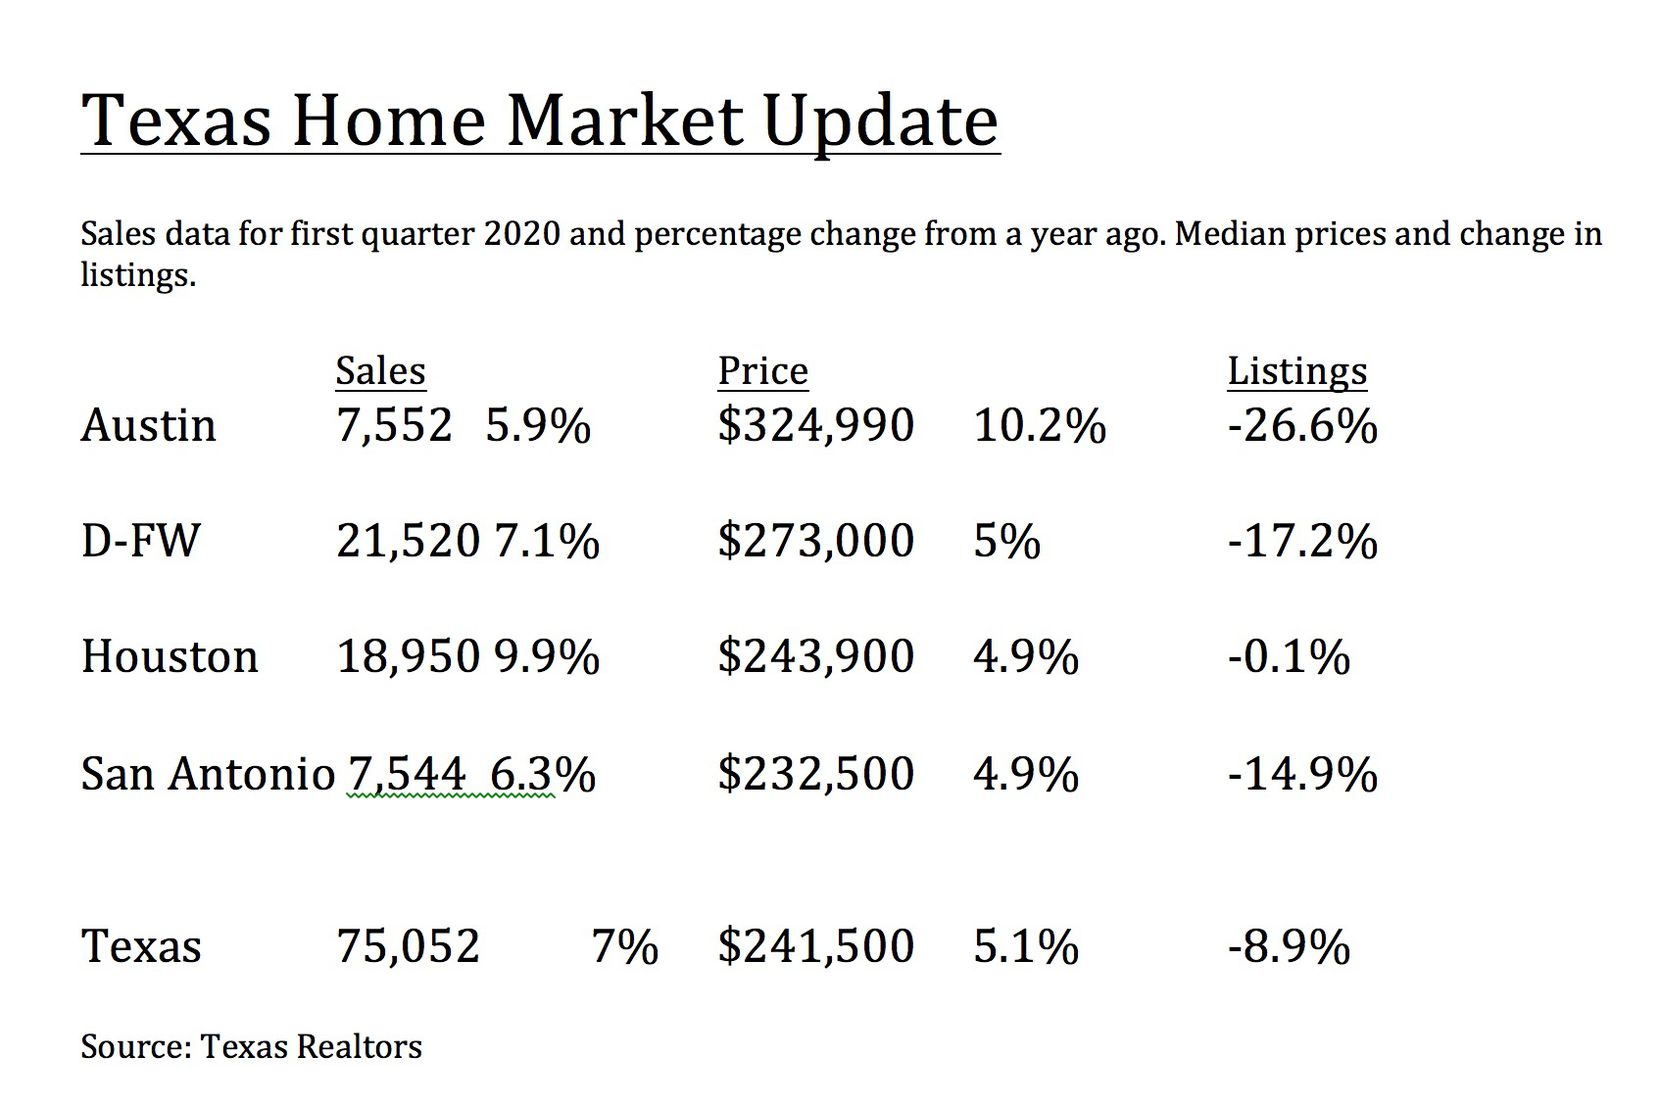 D-FW led the state in first quarter home sales by real estate agents.